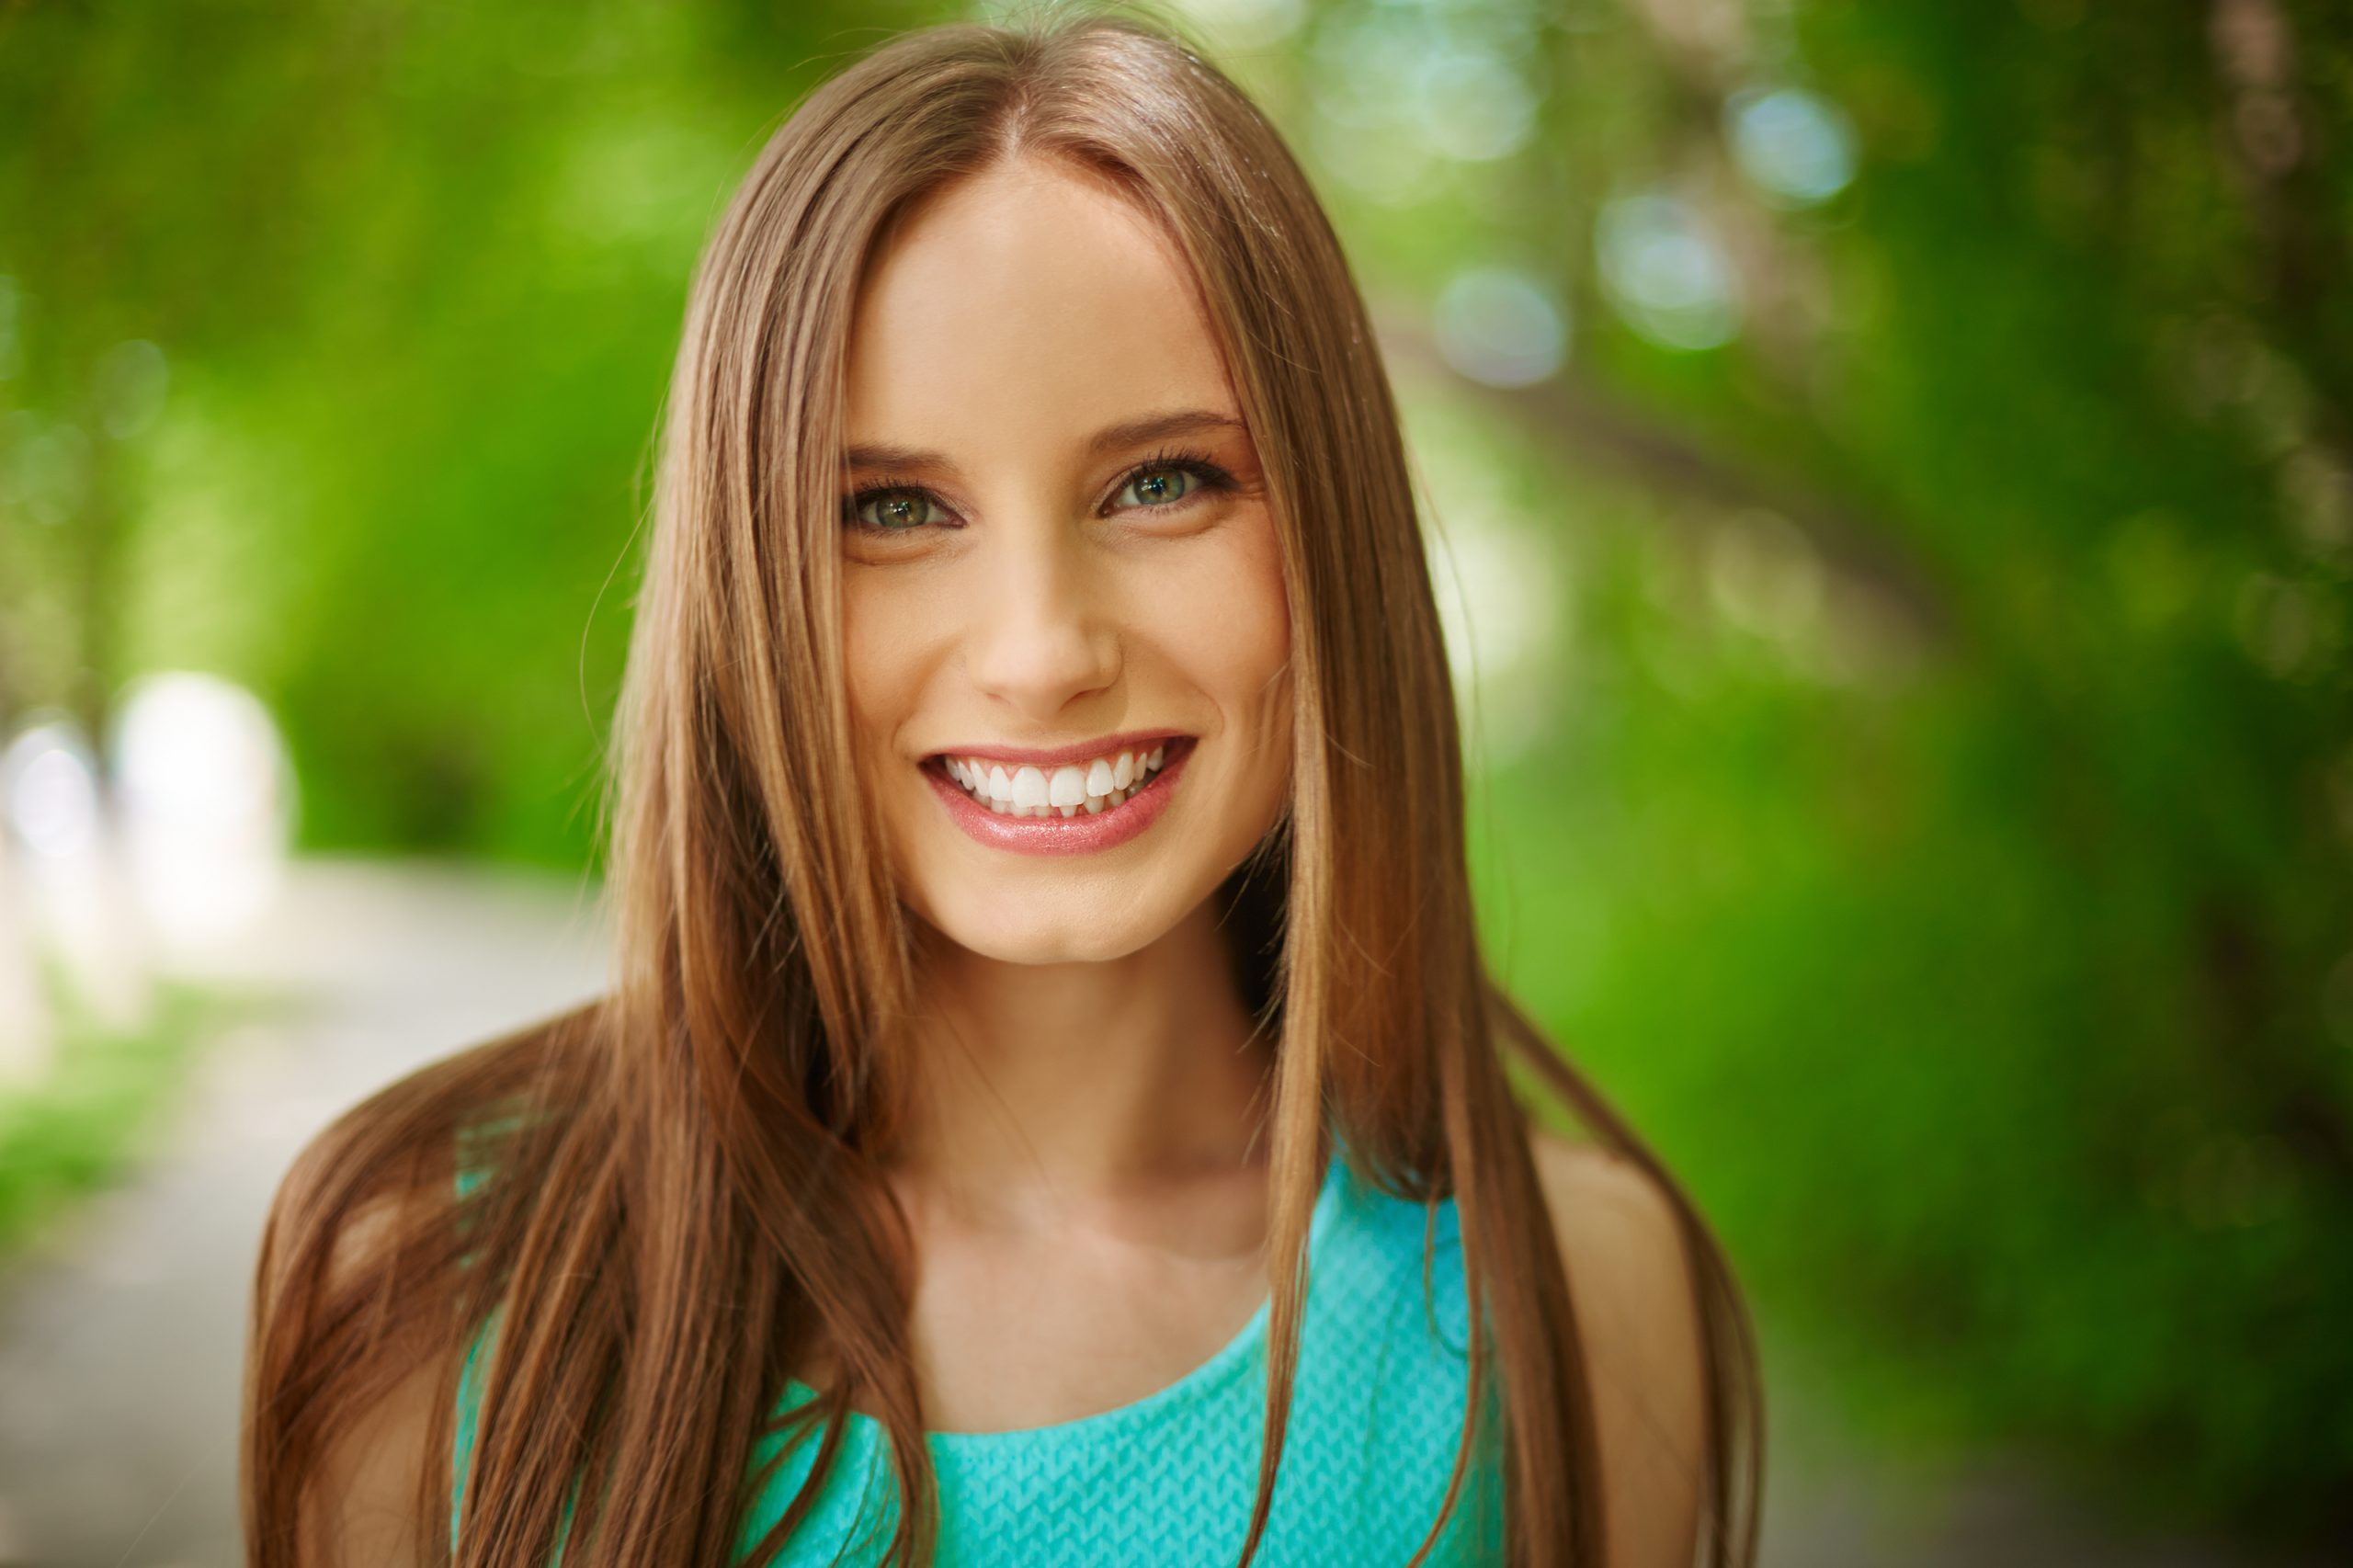 Belarusian smiling girl looking at camera outdoors